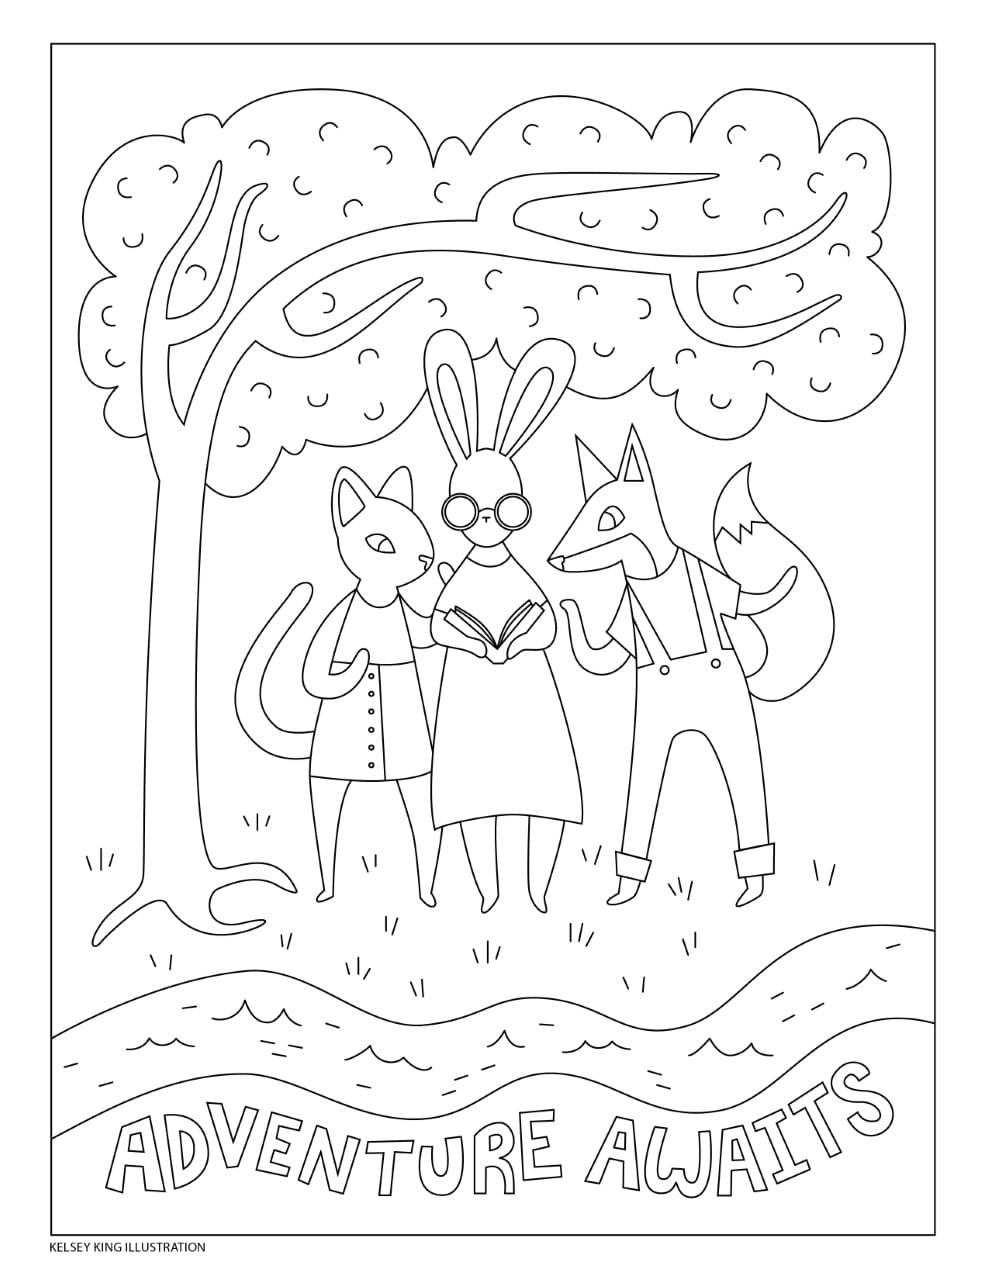 Free B.C. colouring image to stay creative during COVID-19 ... | 1280x989